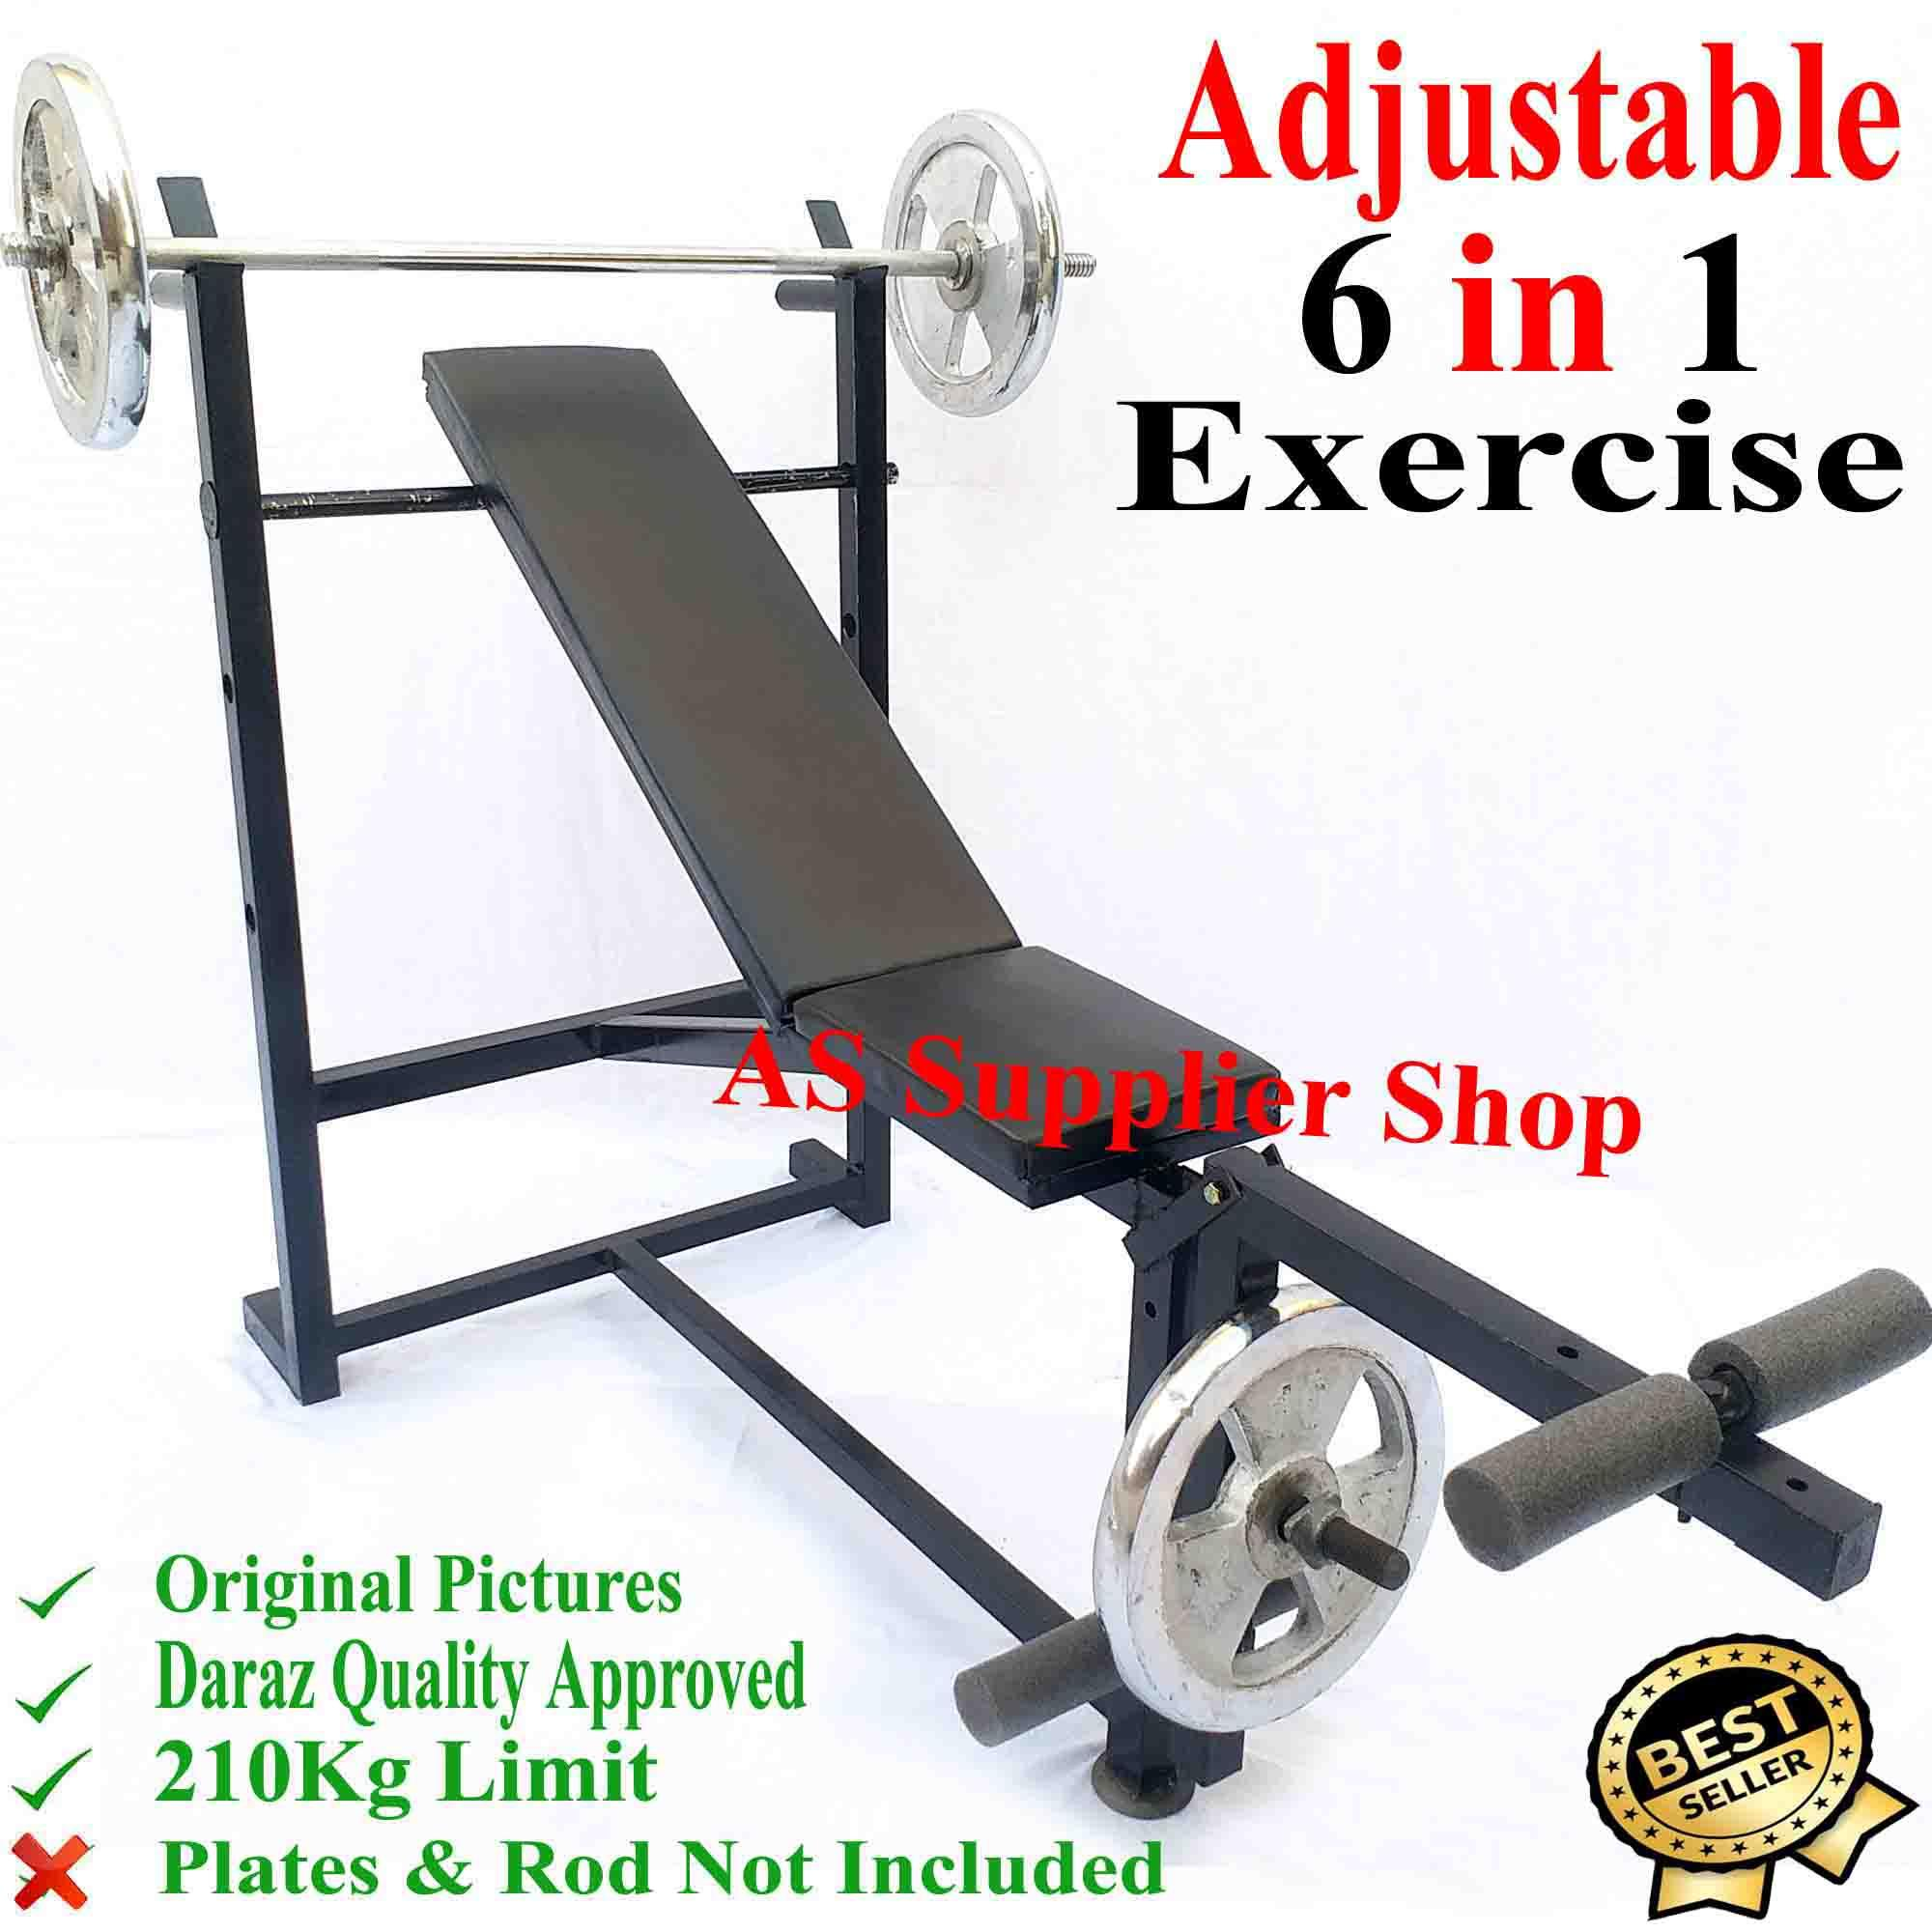 174ba074e46 BEST Quality Multi 6 Exercise Adjustable Chest Bench Press Incline Decline  Straight Flat Leg Biceps Bench